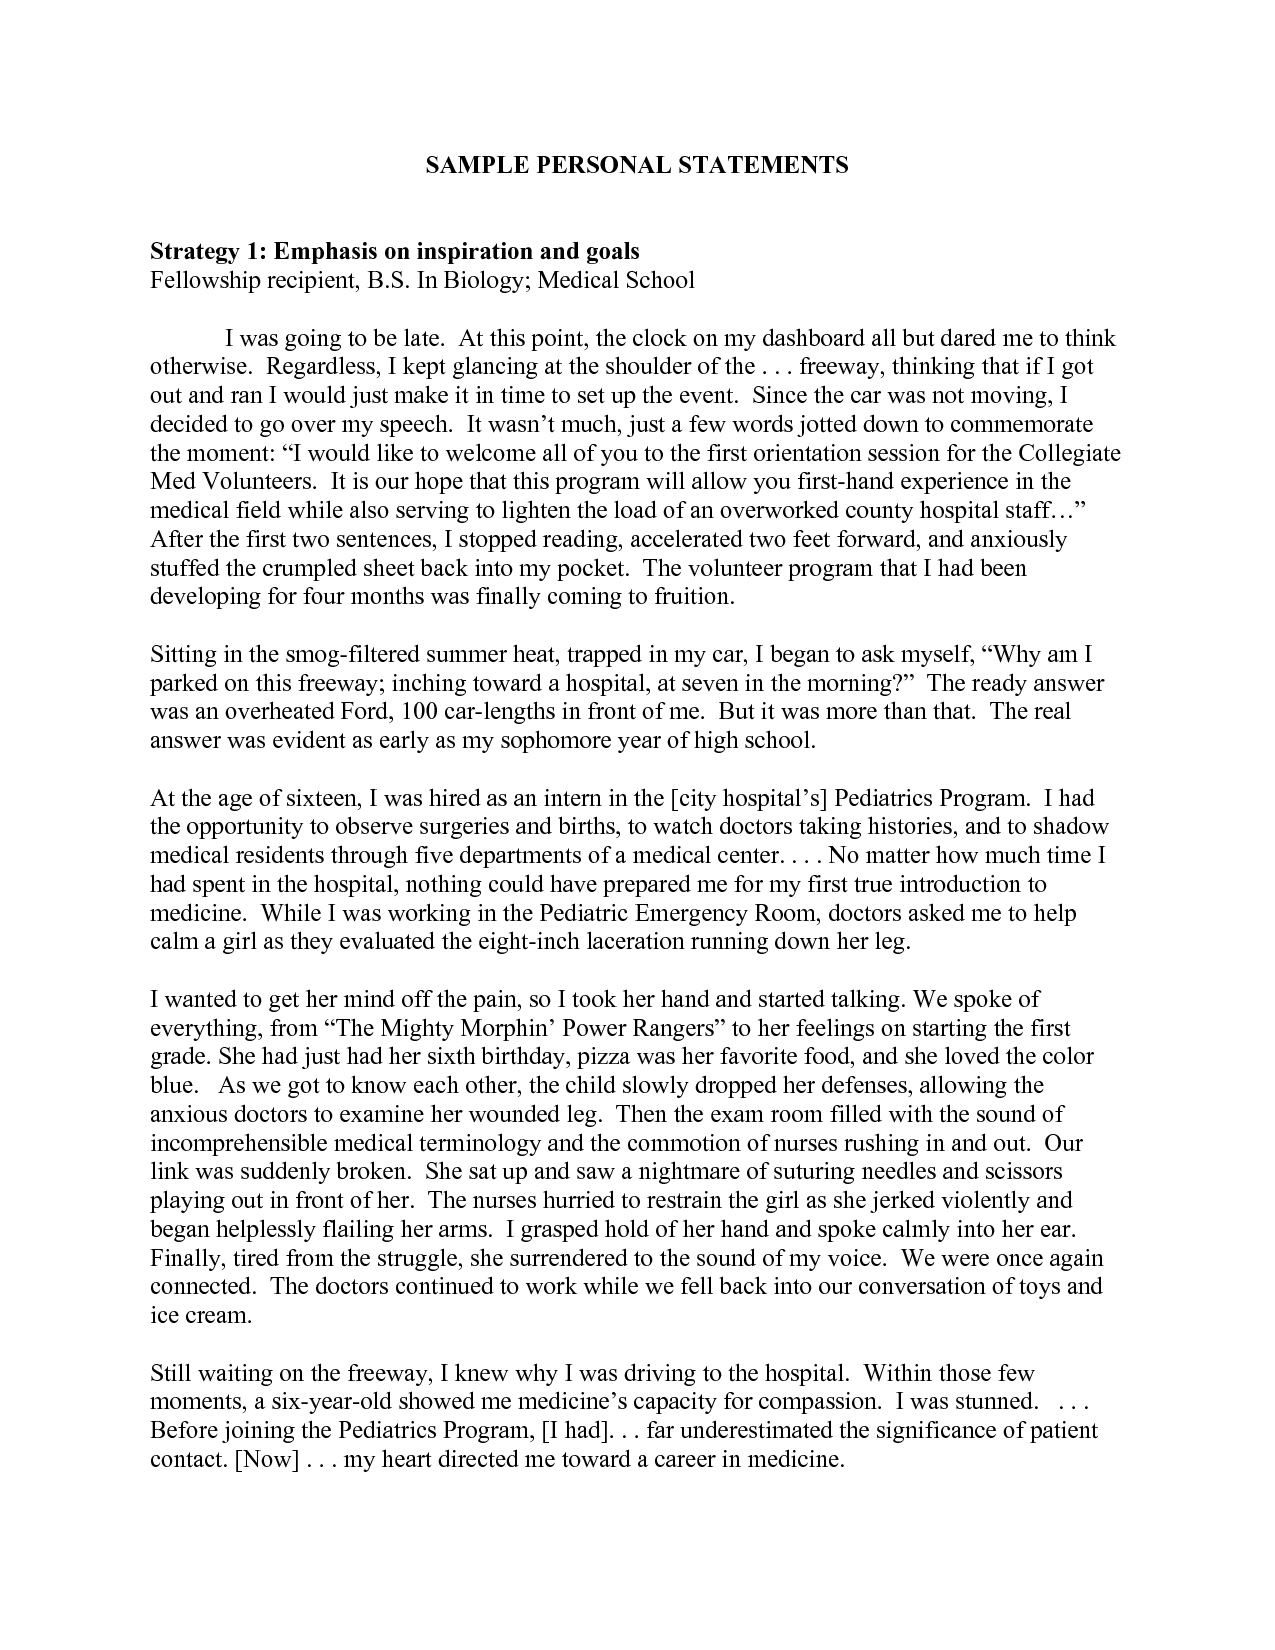 Legitimate Power Leadership Example Essay